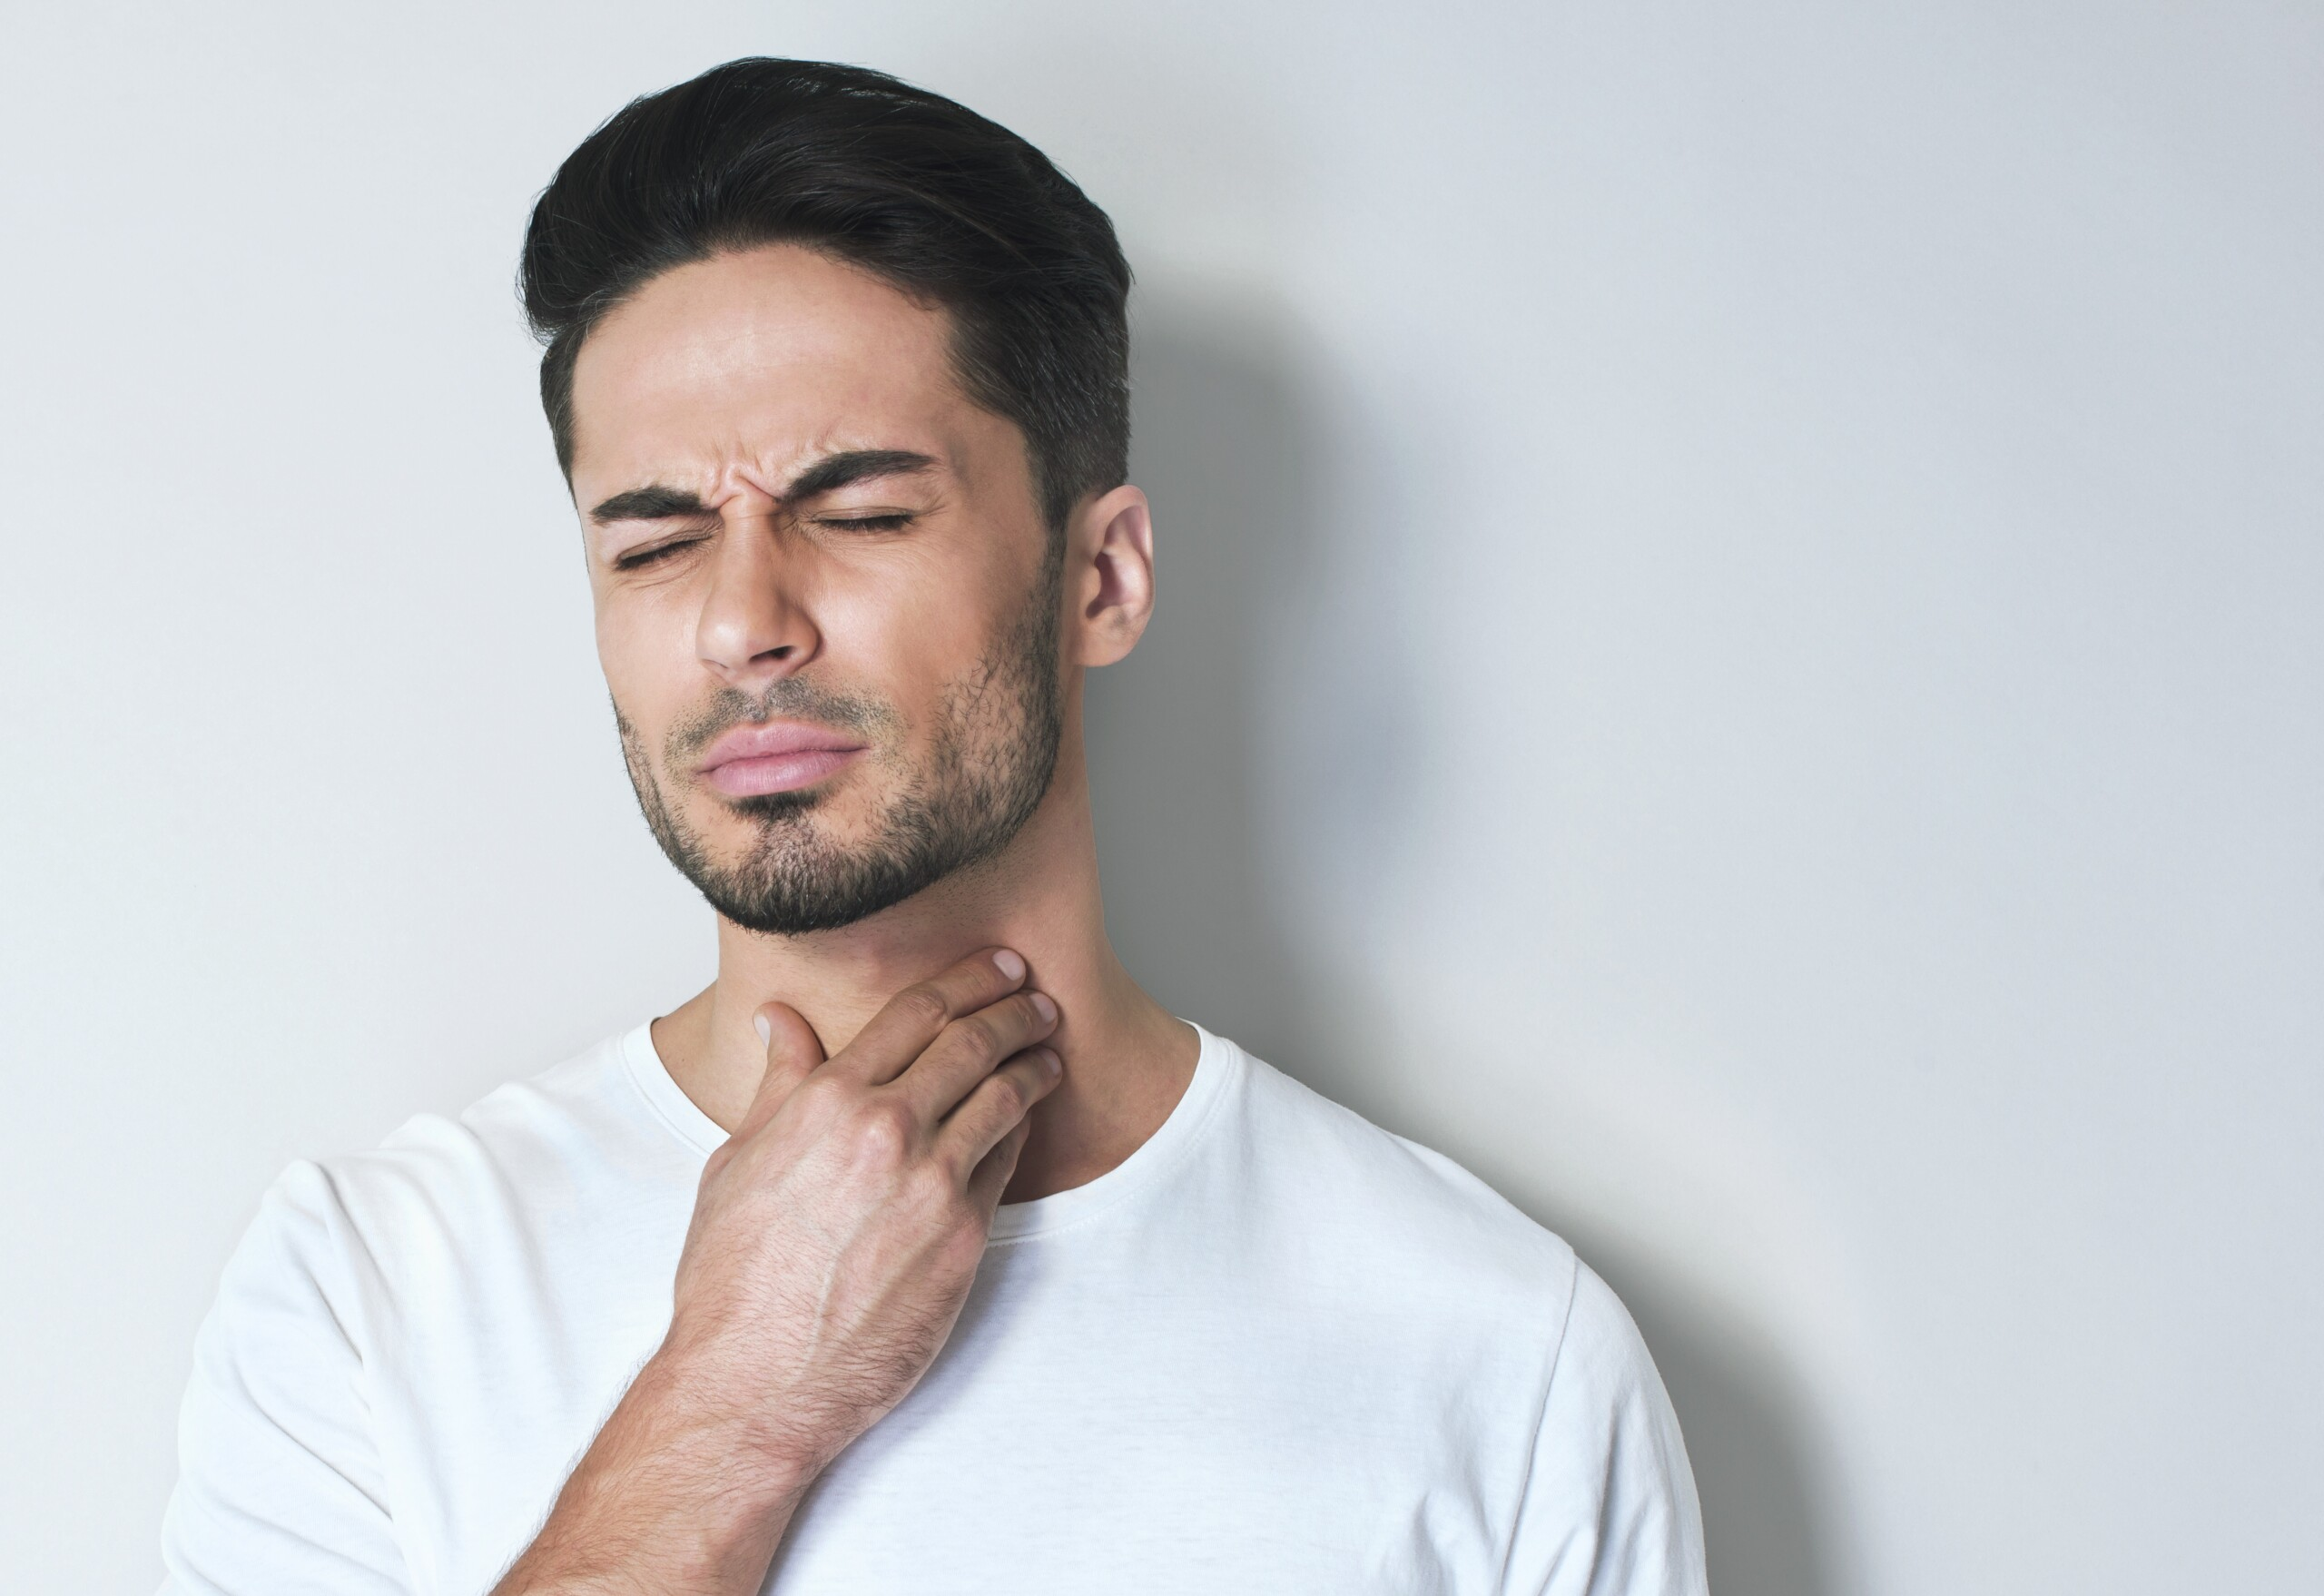 Hoarse Voice, Trouble Swallowing: Causes